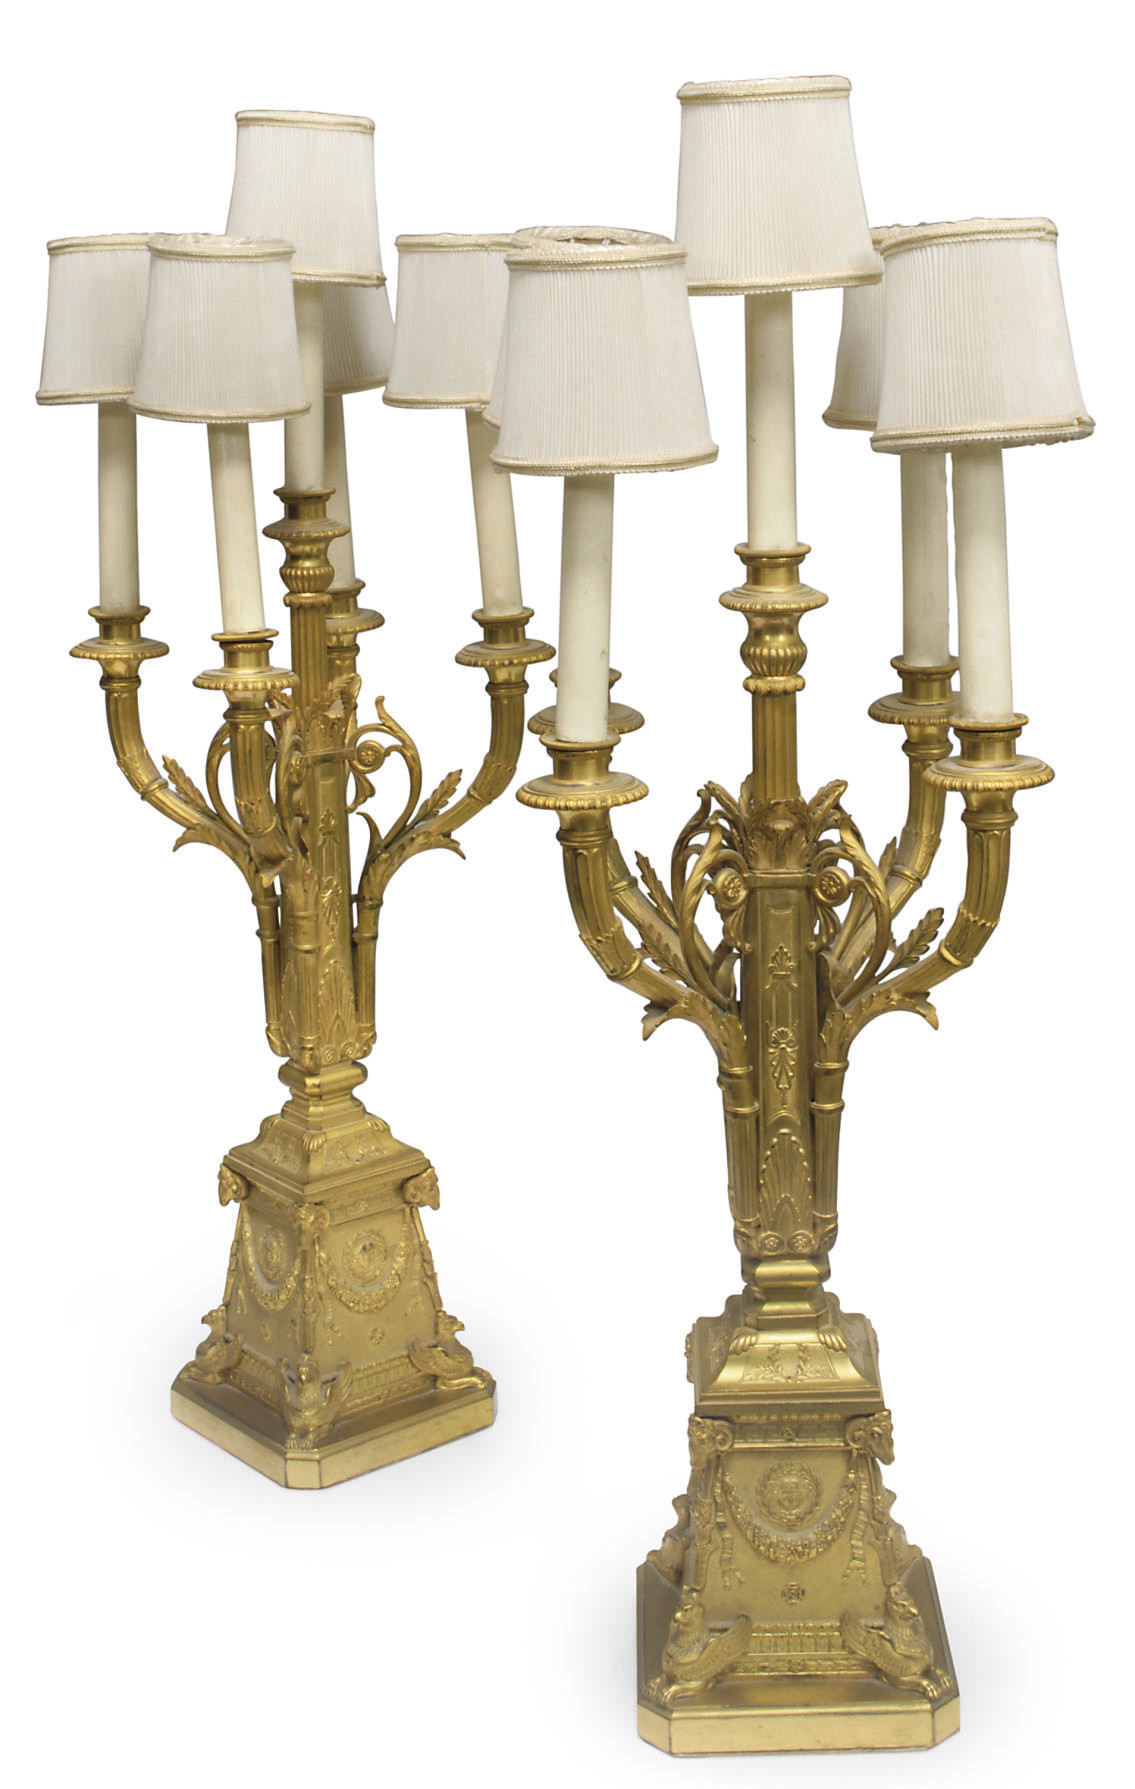 A pair of Italian ormolu five-